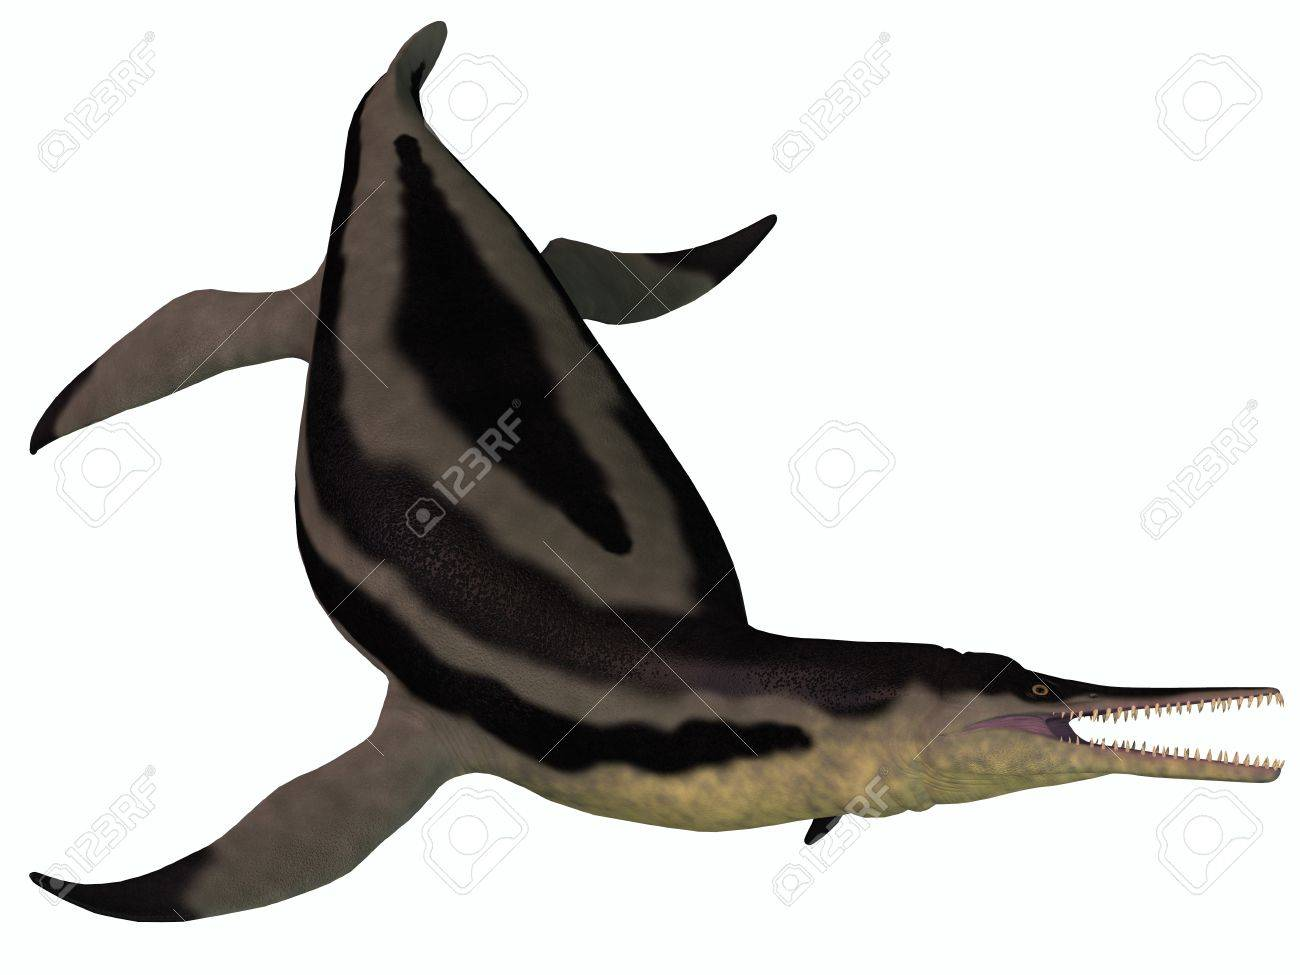 Dolichorhynchops Plesiosaur on White - Dolichorhynchops is an extinct genus of short-neck Plesiosaur from the Cretaceous Period and lived in the oceans of North America Stock Photo - 21763358